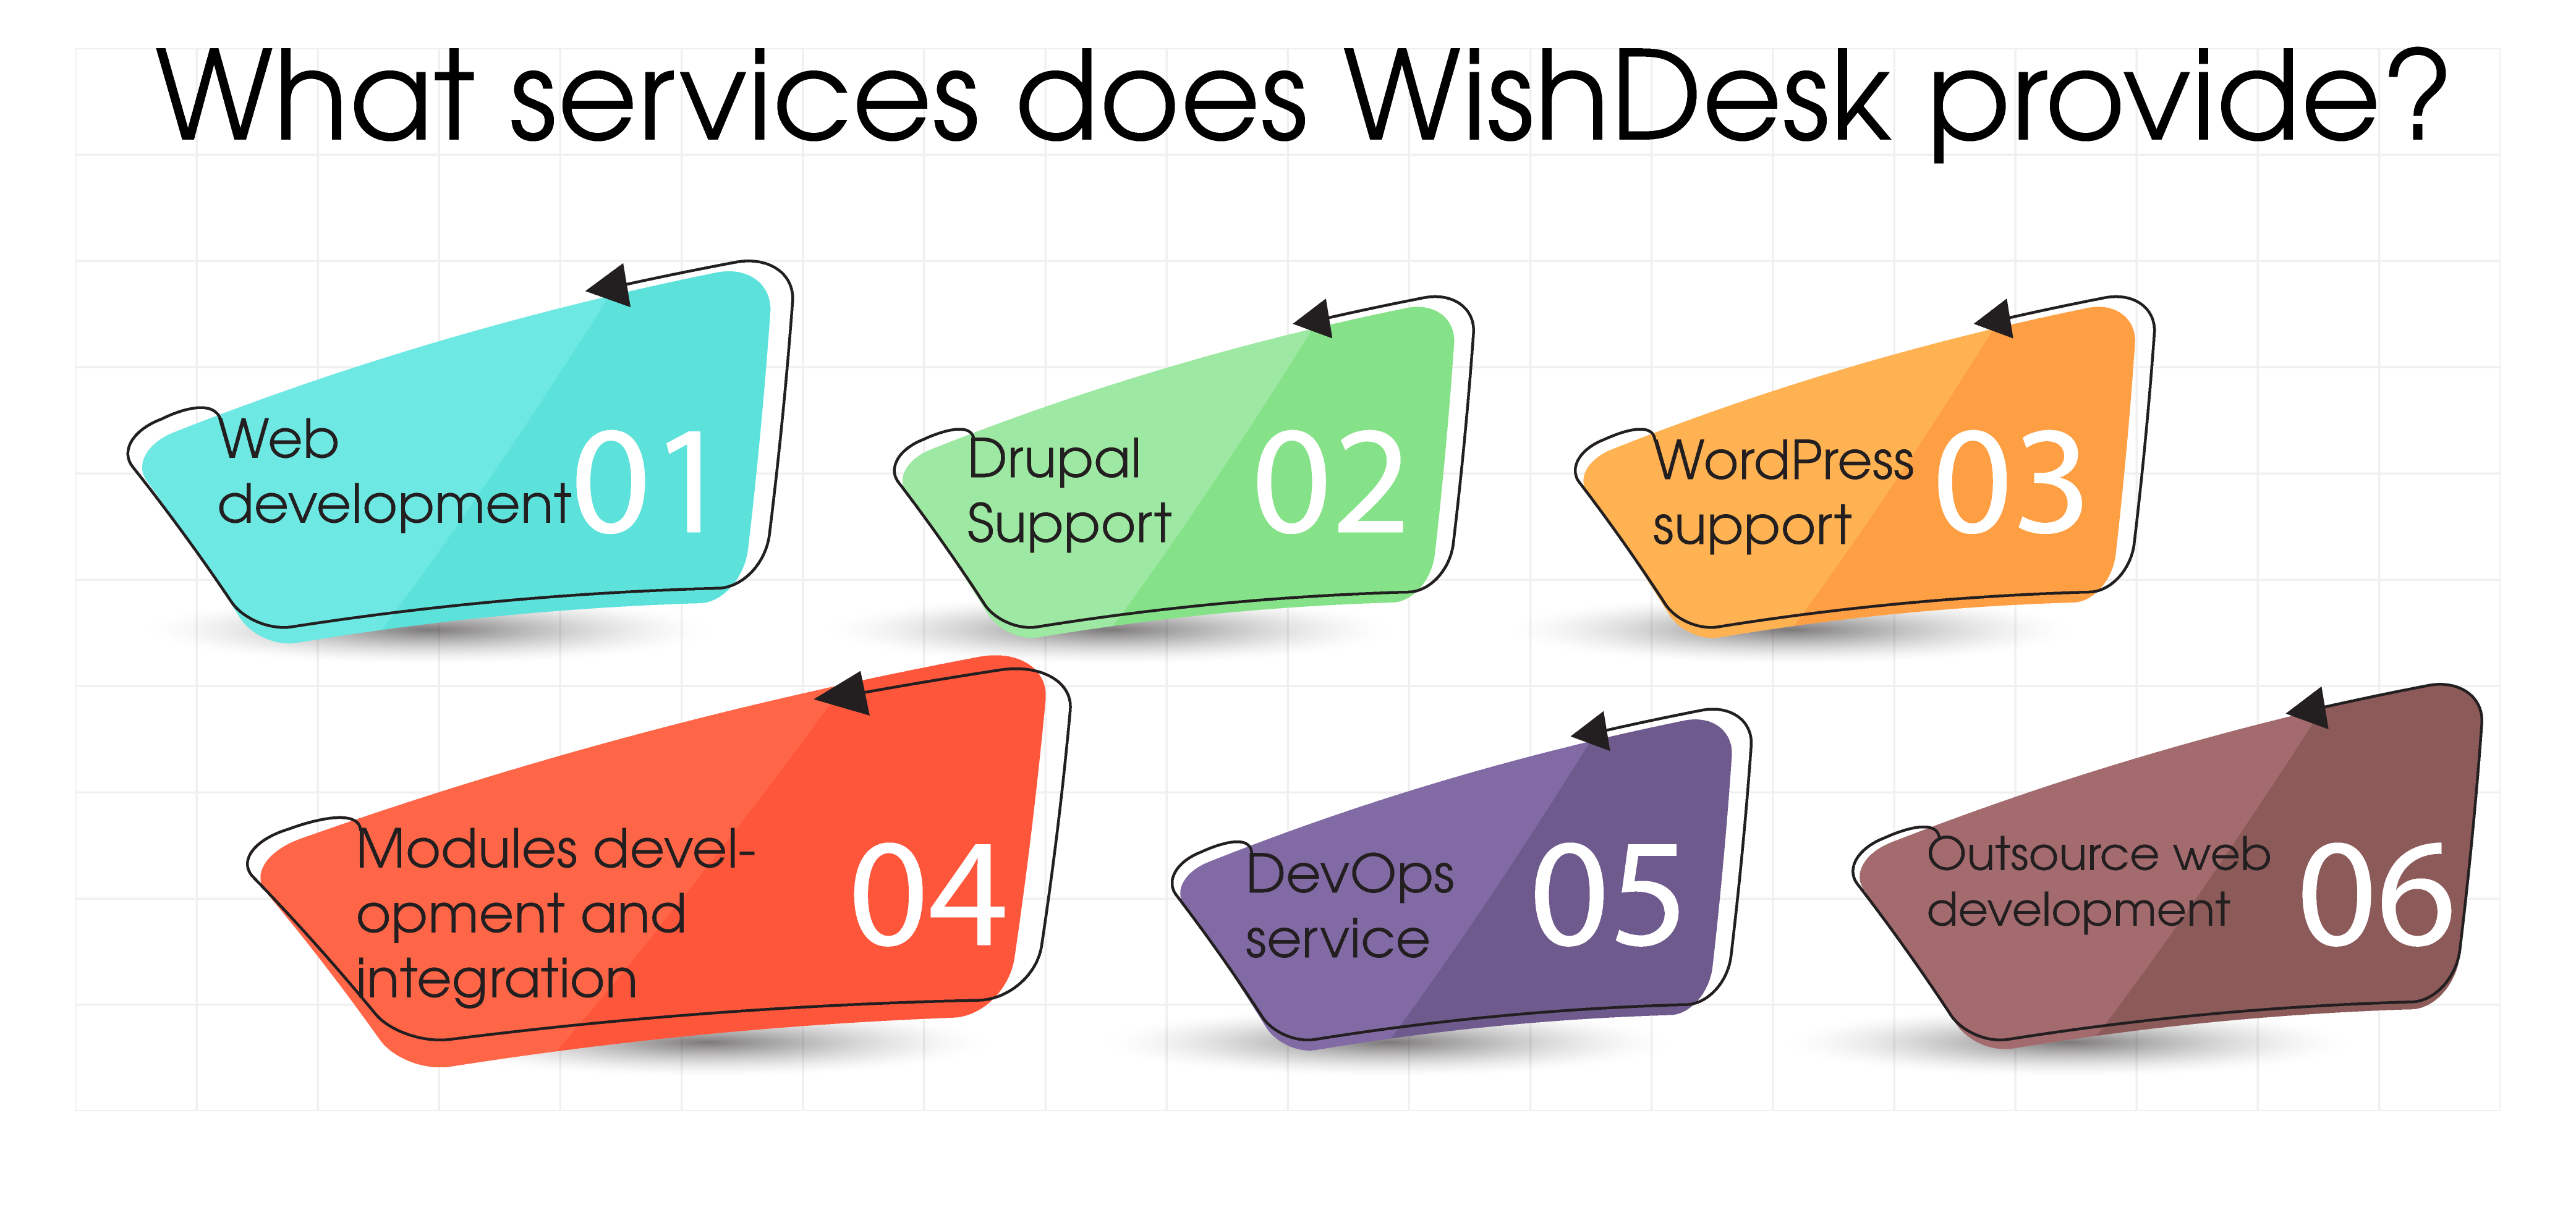 What services does WishDesk provide?